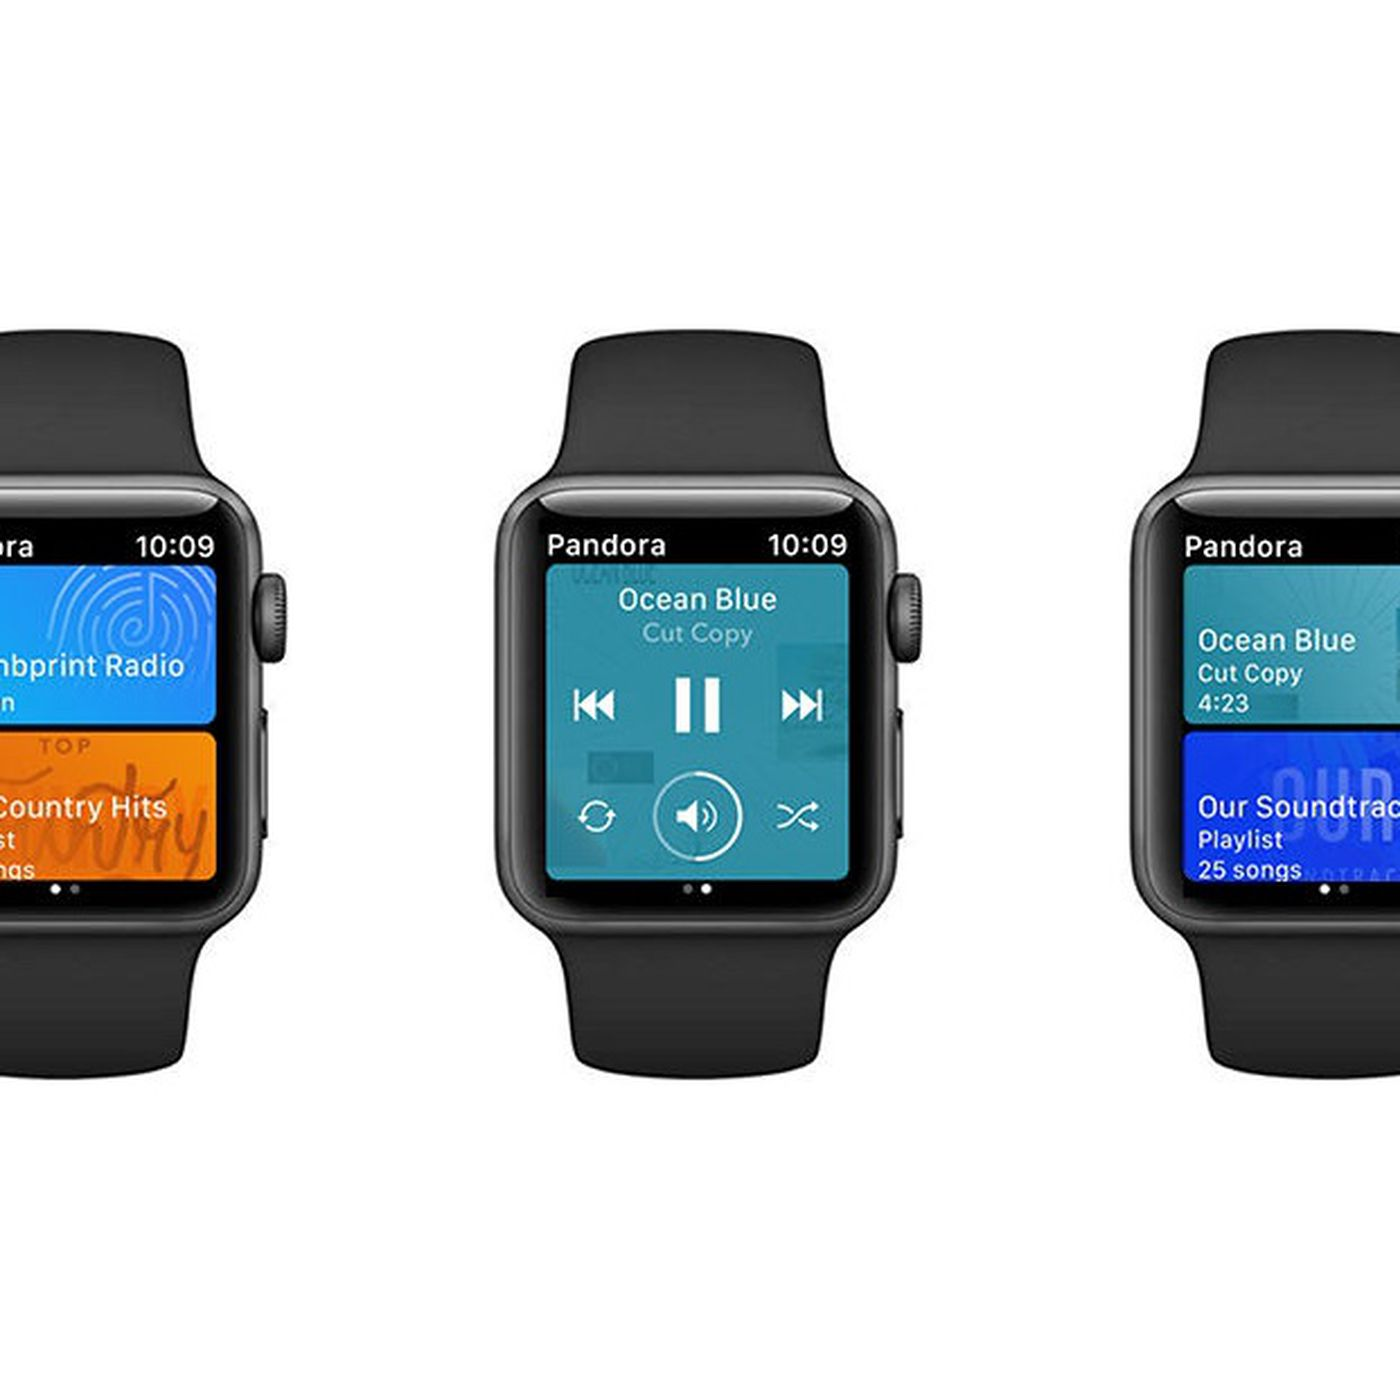 can you install pandora on apple watch